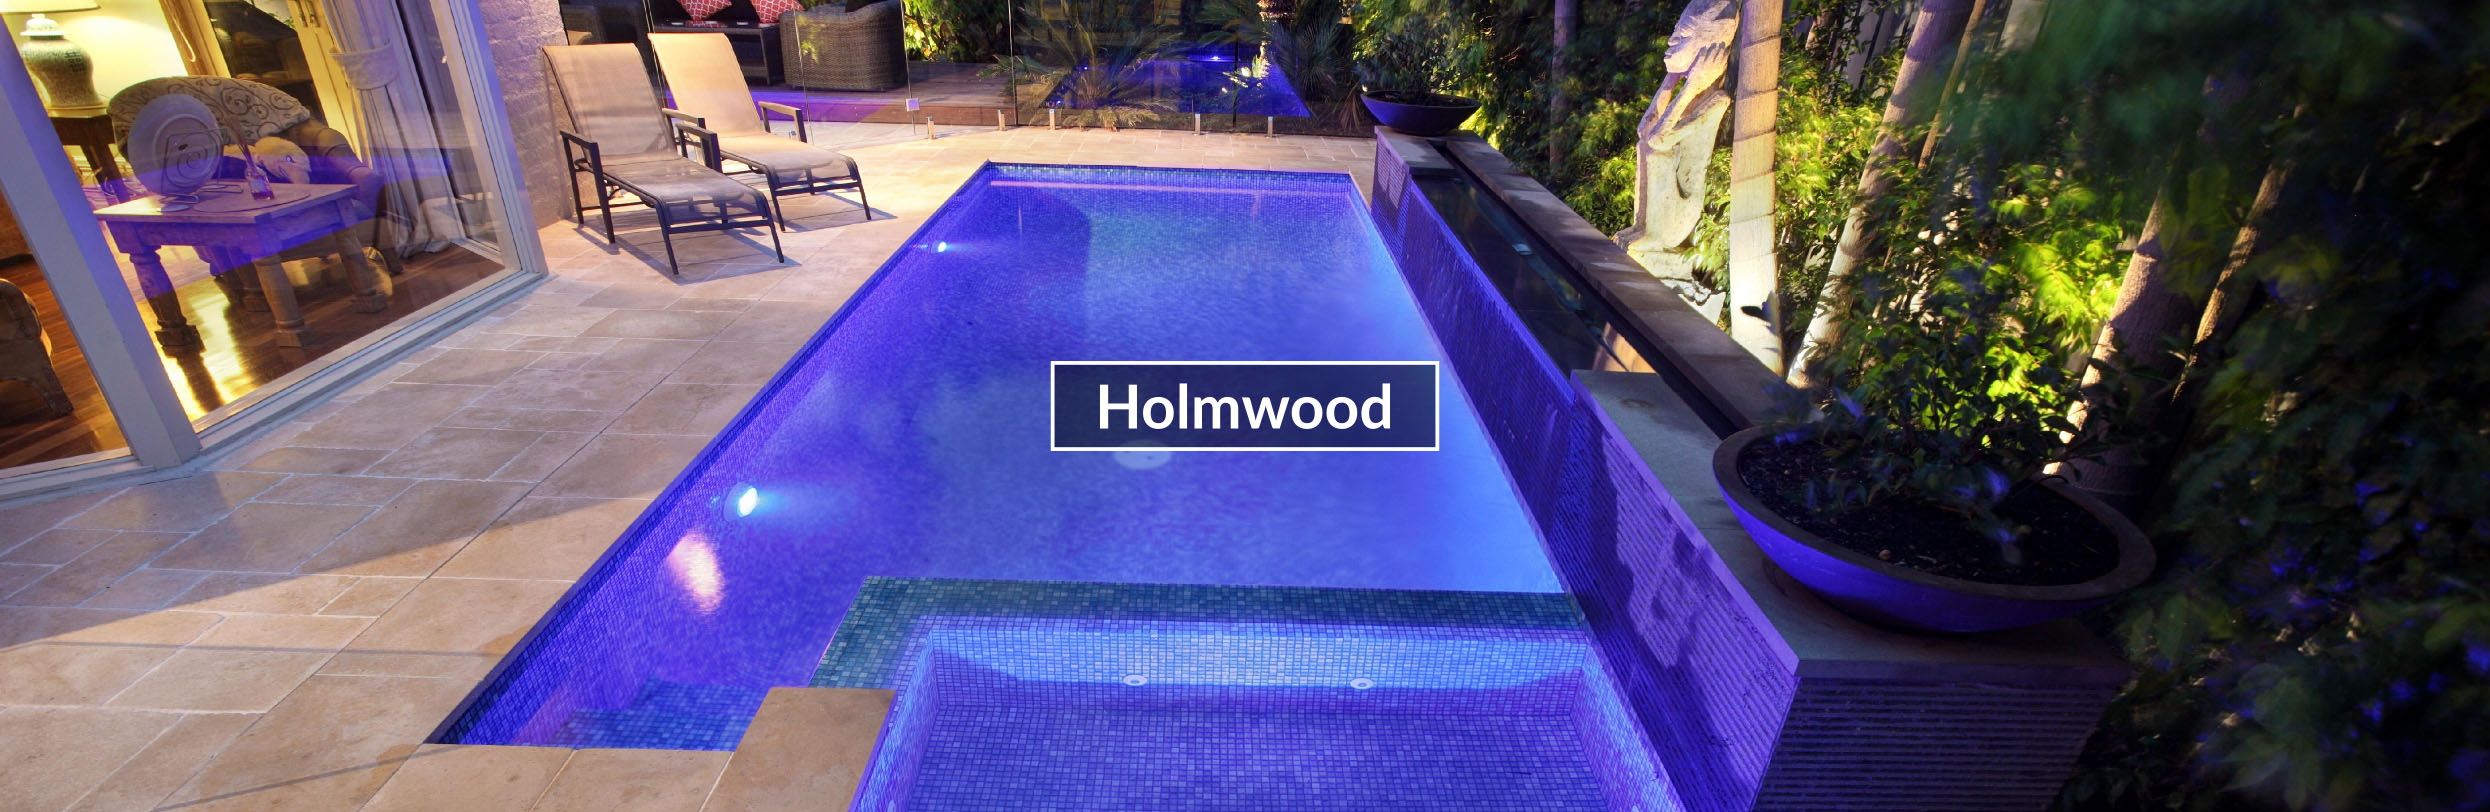 Holmwood - Kiama Pools Project